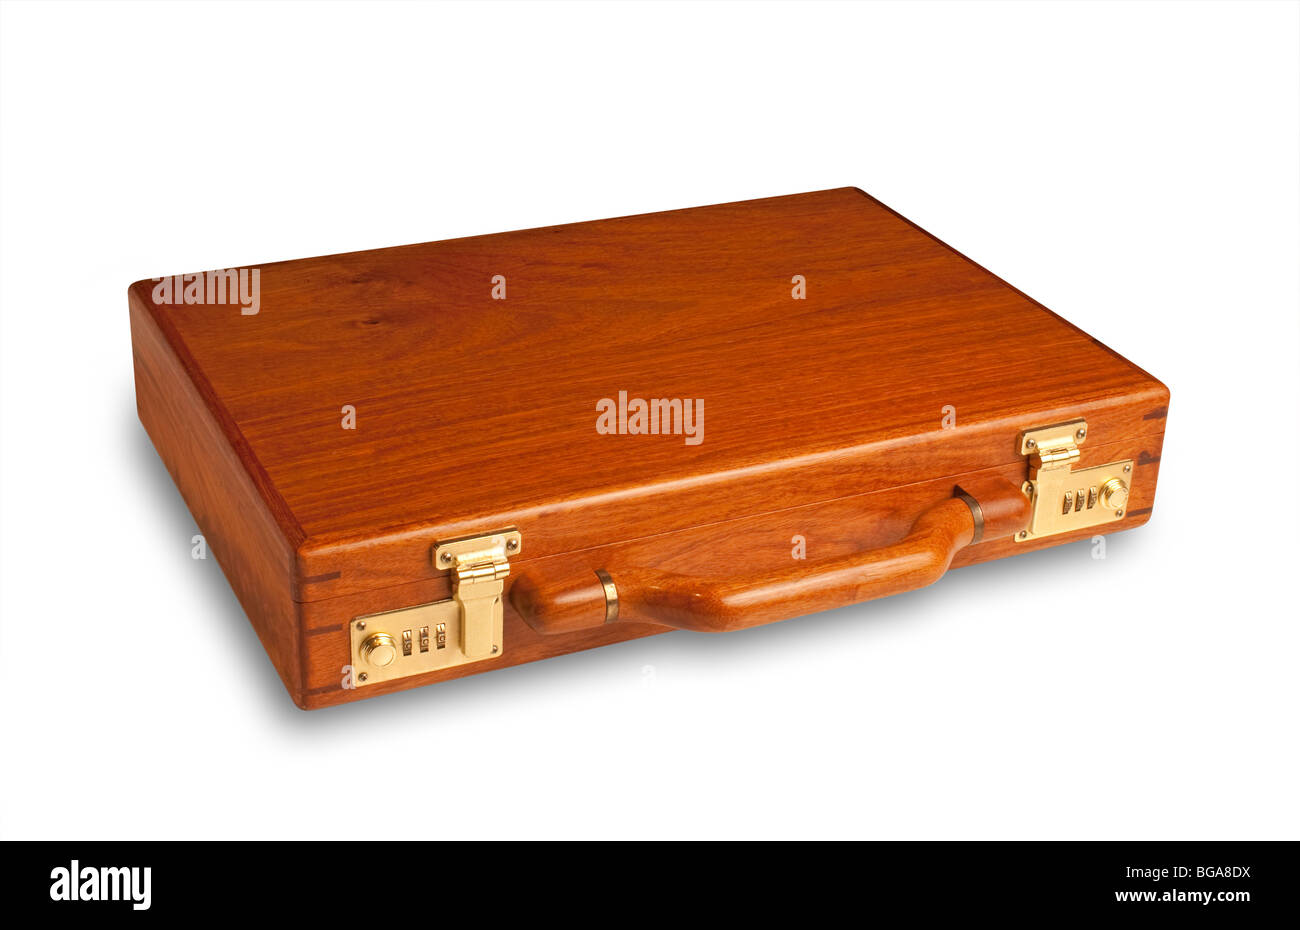 attache case made of rich cherry wood with brass latches, includes shadow and clipping path - Stock Image